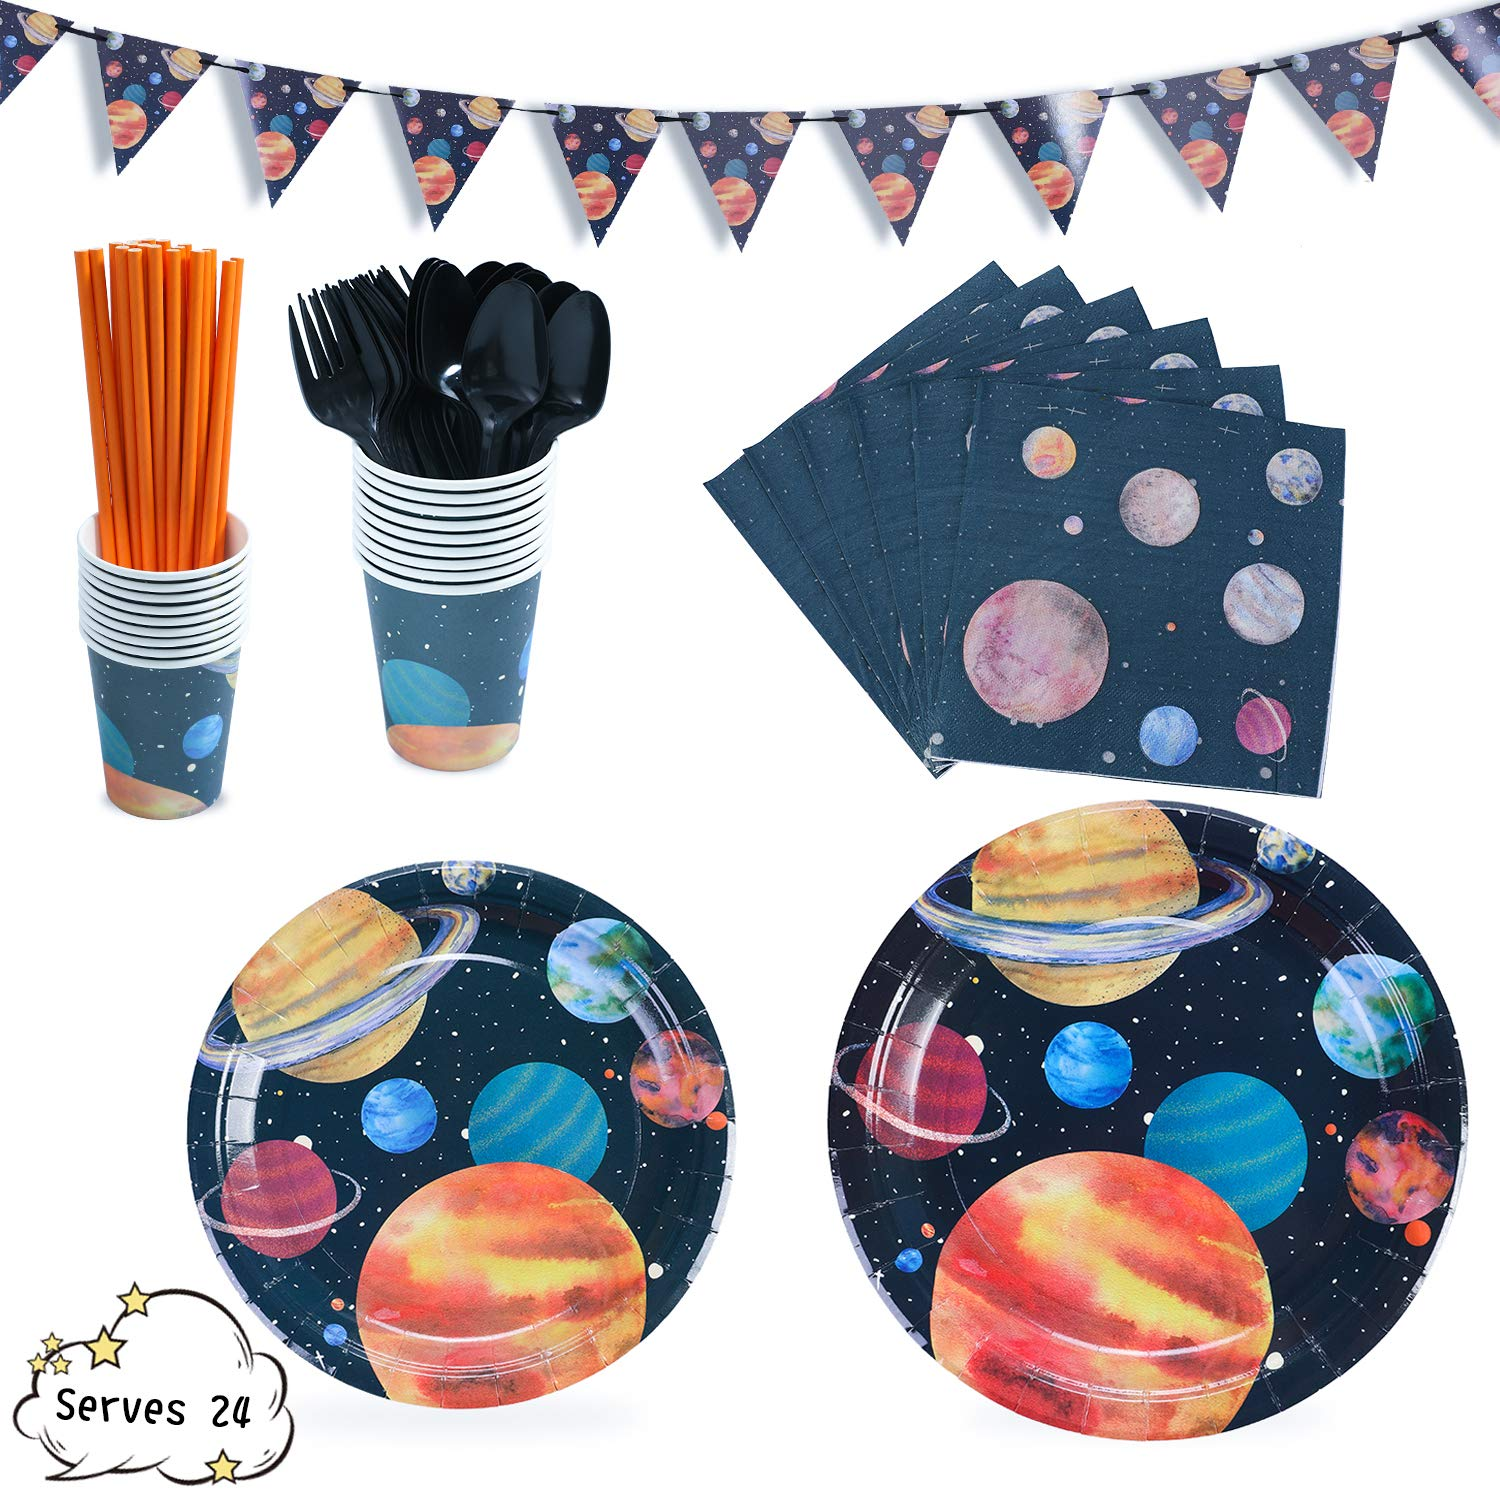 Outer Space Party Supplies Decorations Universe Planets Dinnerware Includes 7''&9'' Paper Plates Napkins Straws Knives Forks Cups Banner For Birthday, Planet Themed Parties, Serves 24 by Party Family